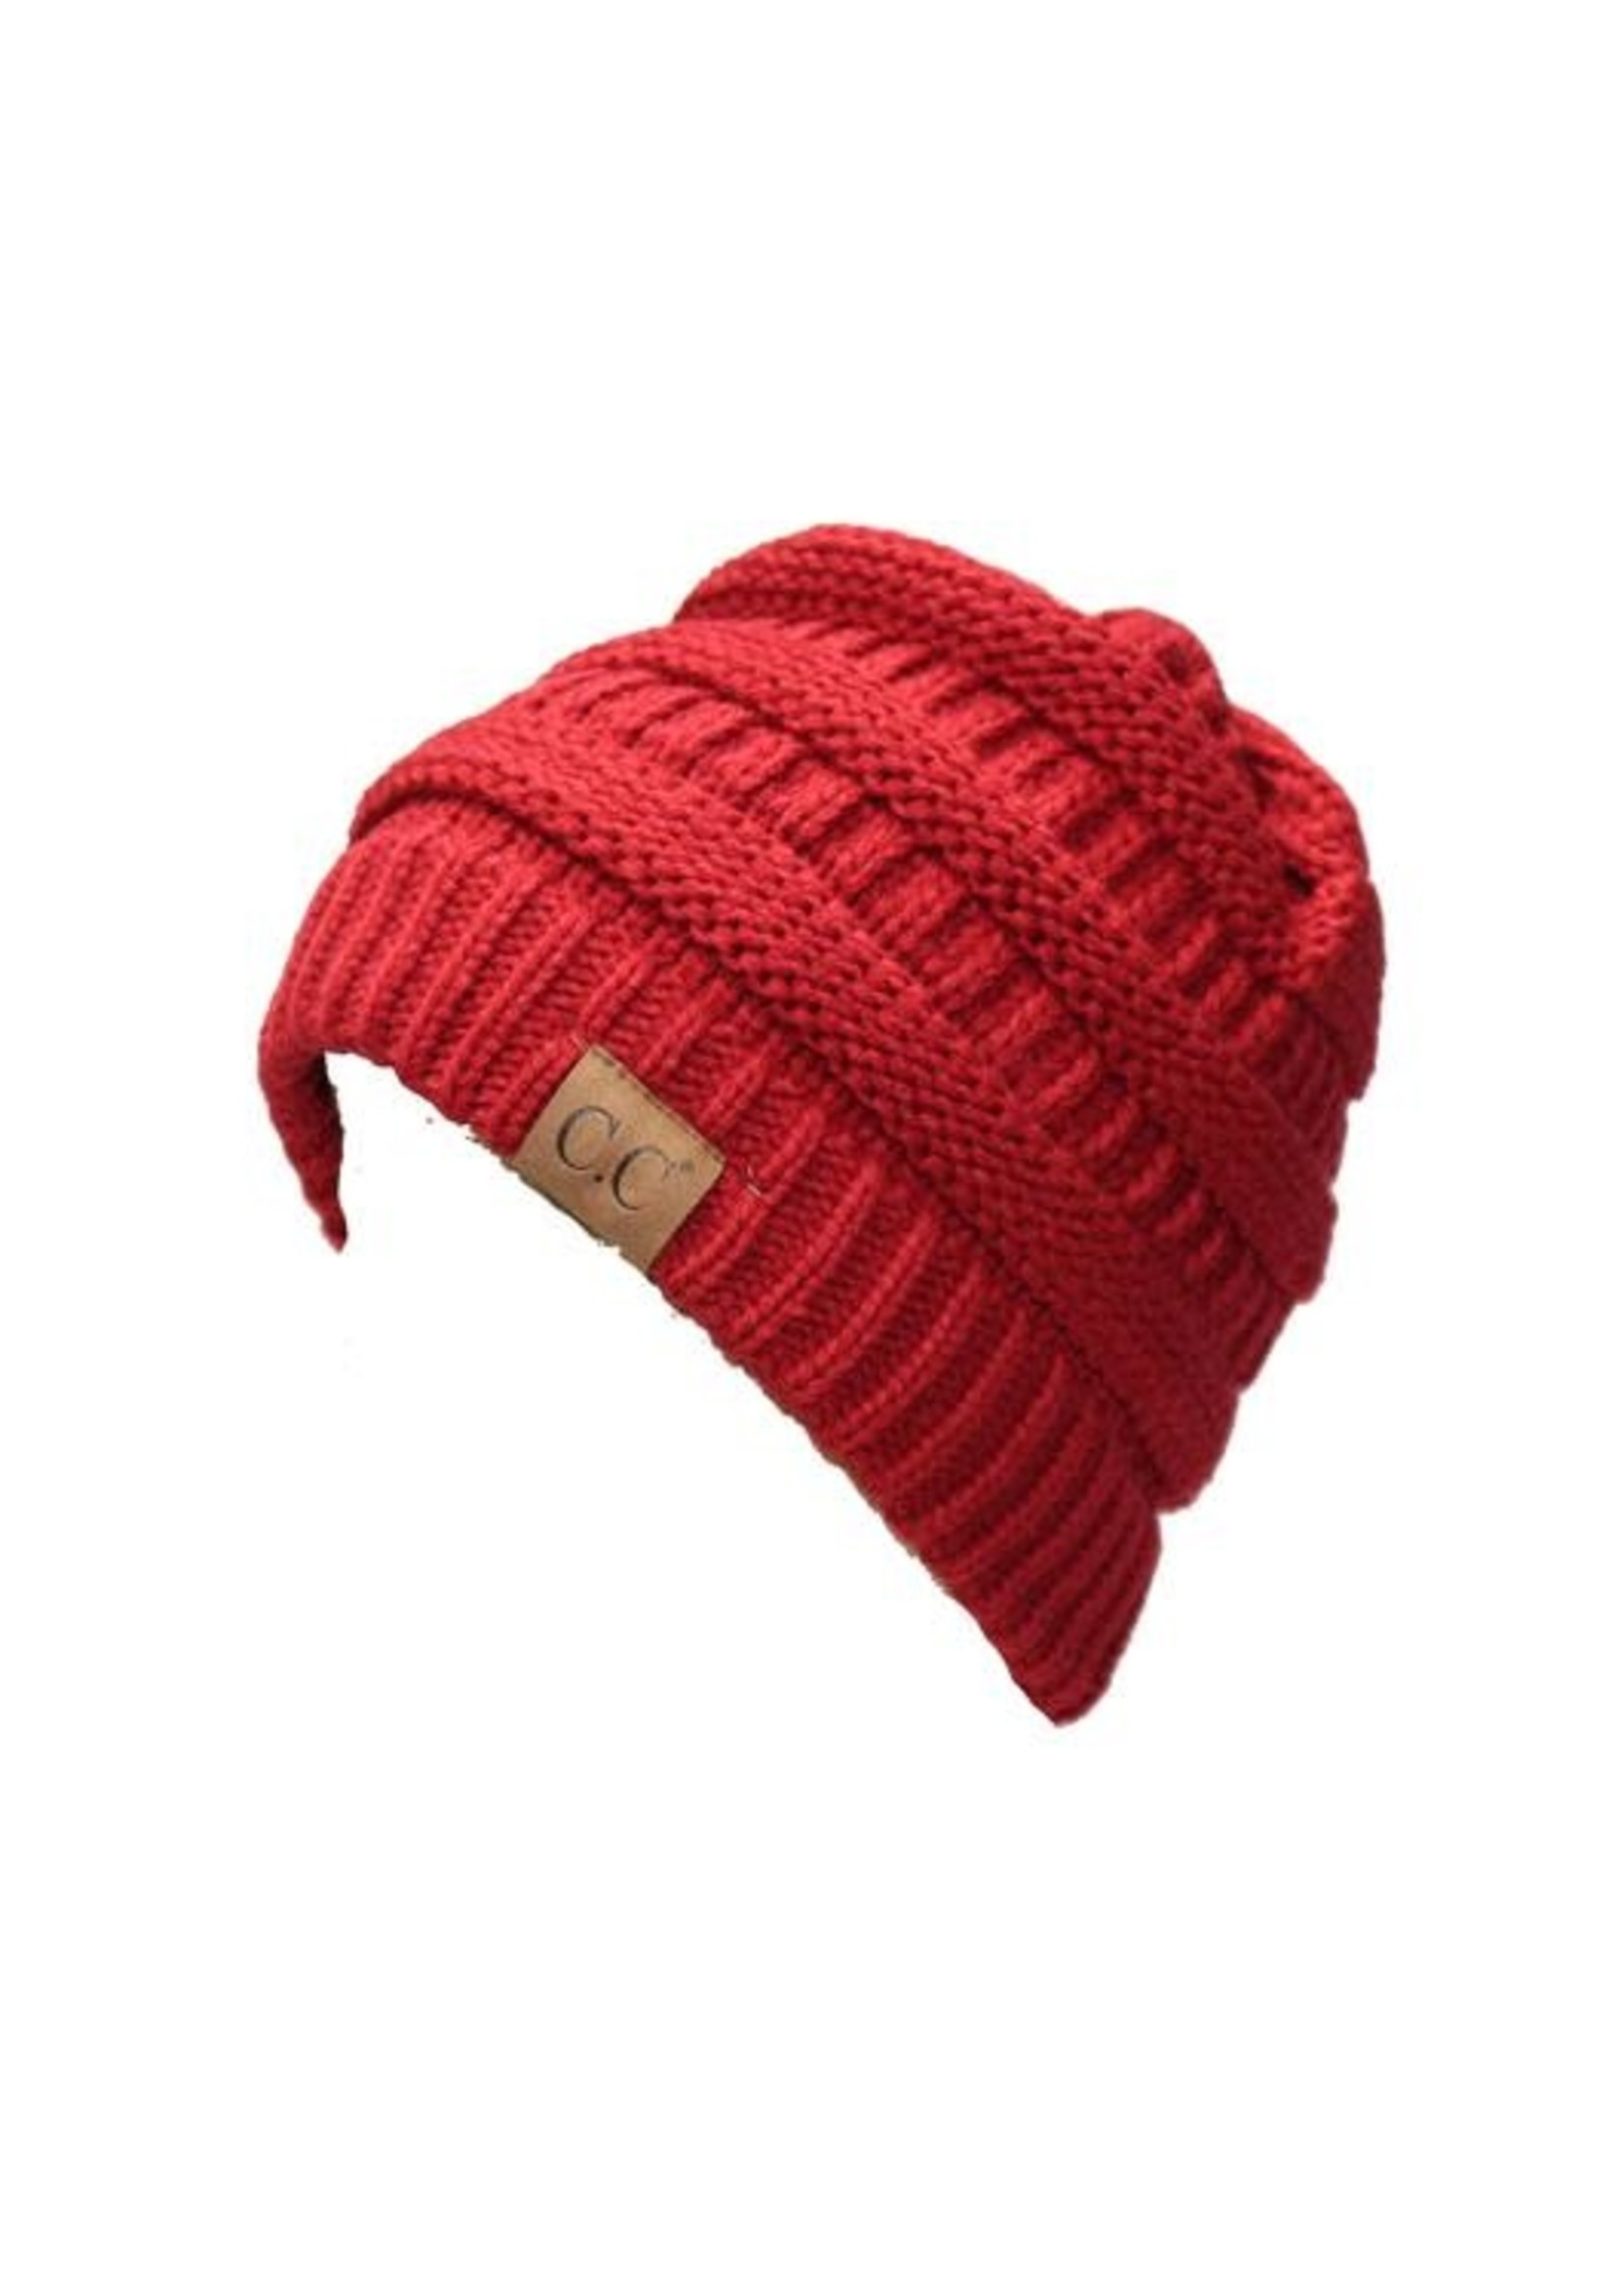 Knitted Beanie with C.C.